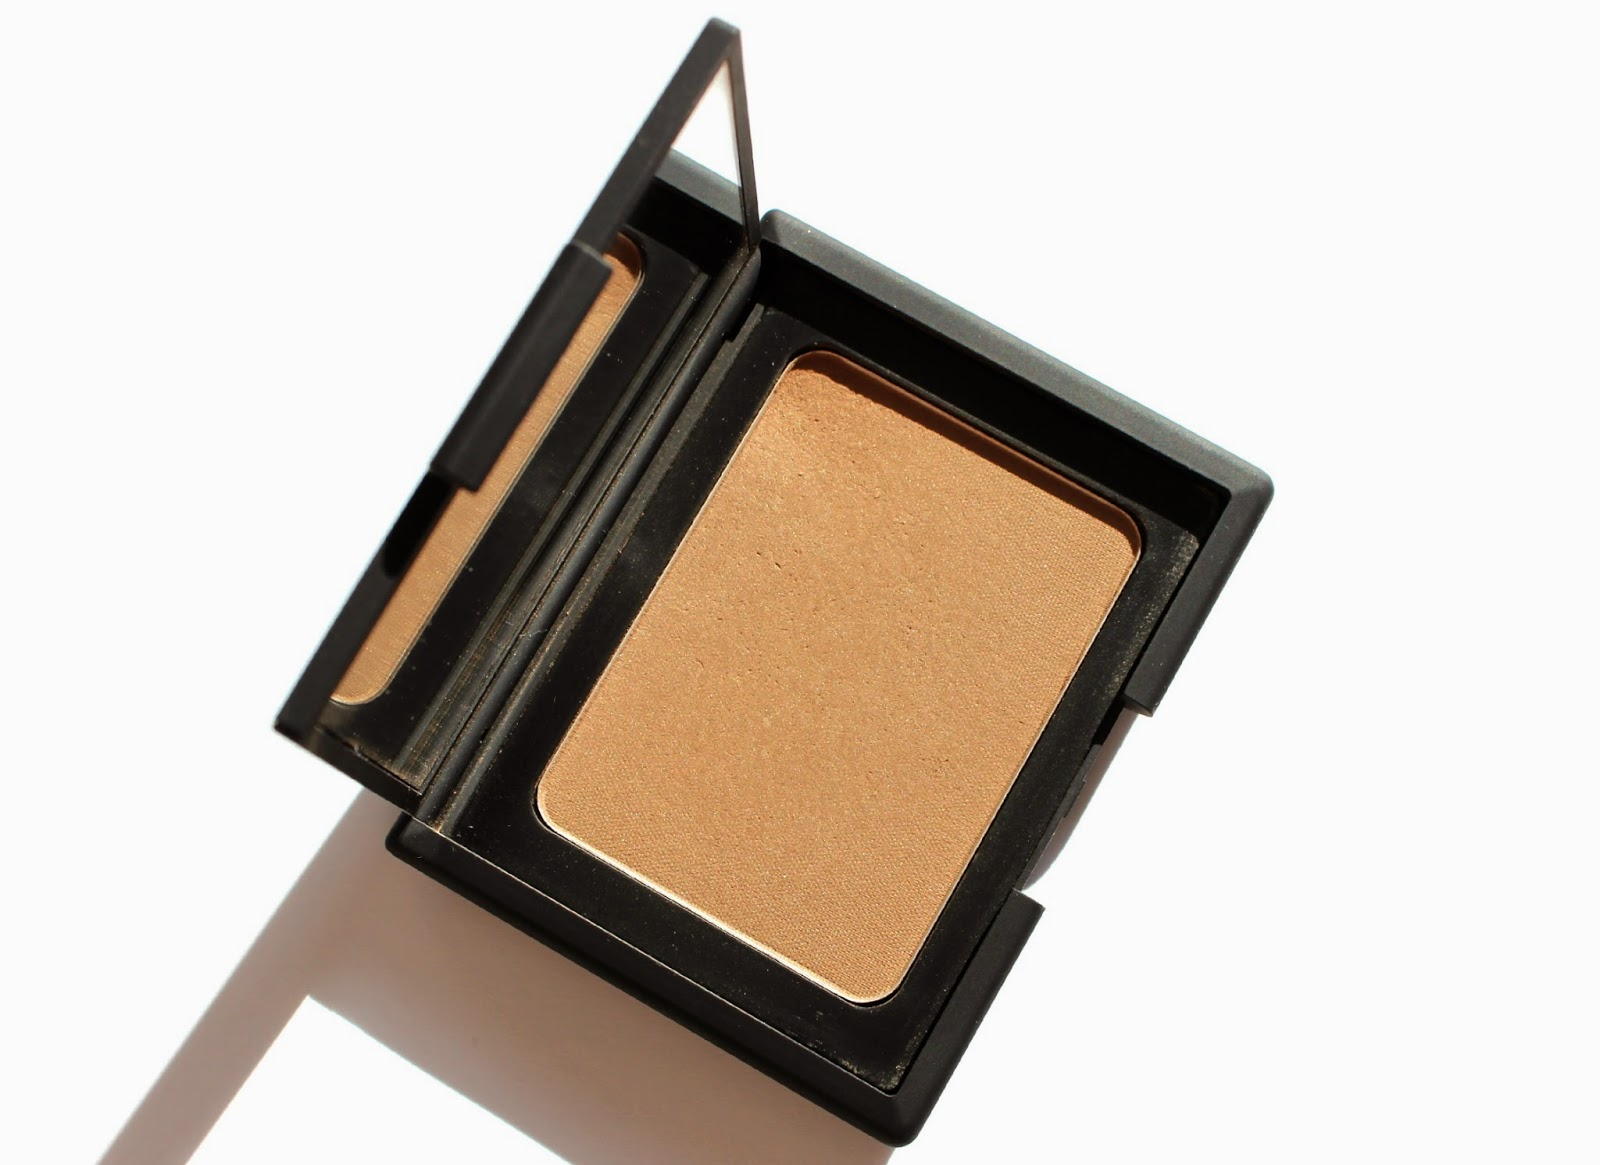 NARS Laguna Bronzer Review & Swatches